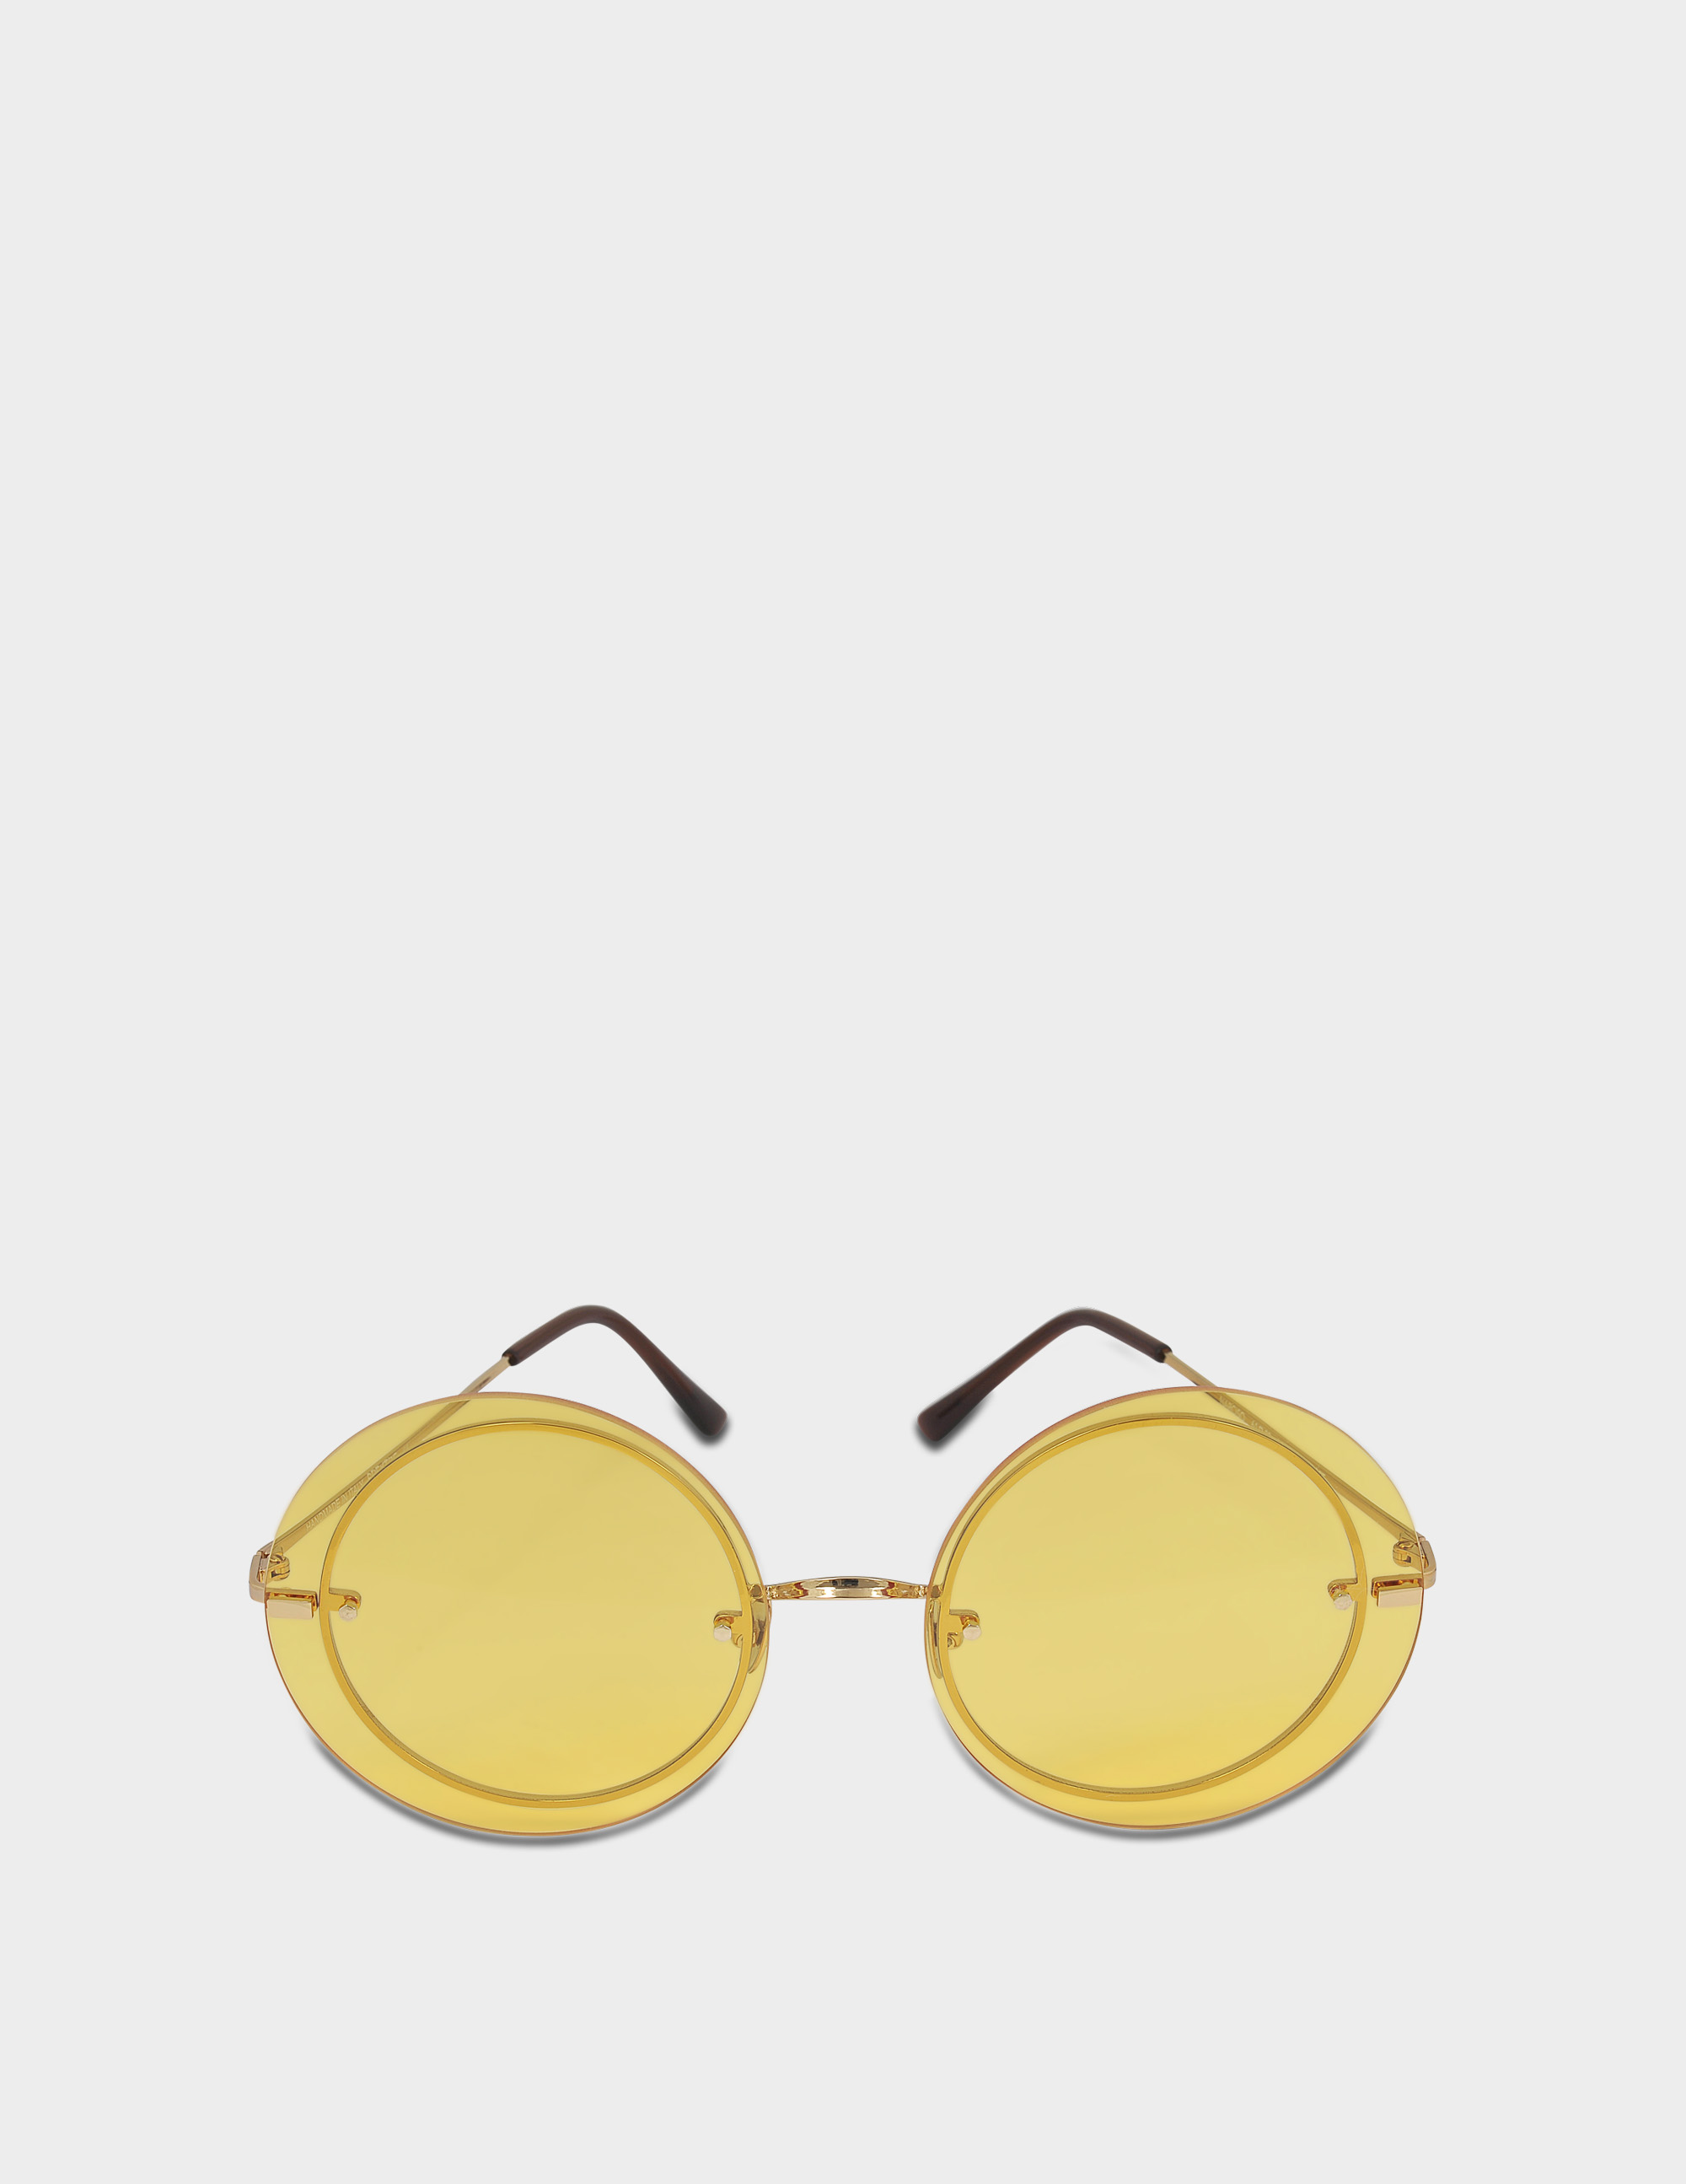 SPEKTRE NARCISO SUNGLASSES IN GLOSSY GOLD AND YELLOW PASTEL STAINLESS STEEL